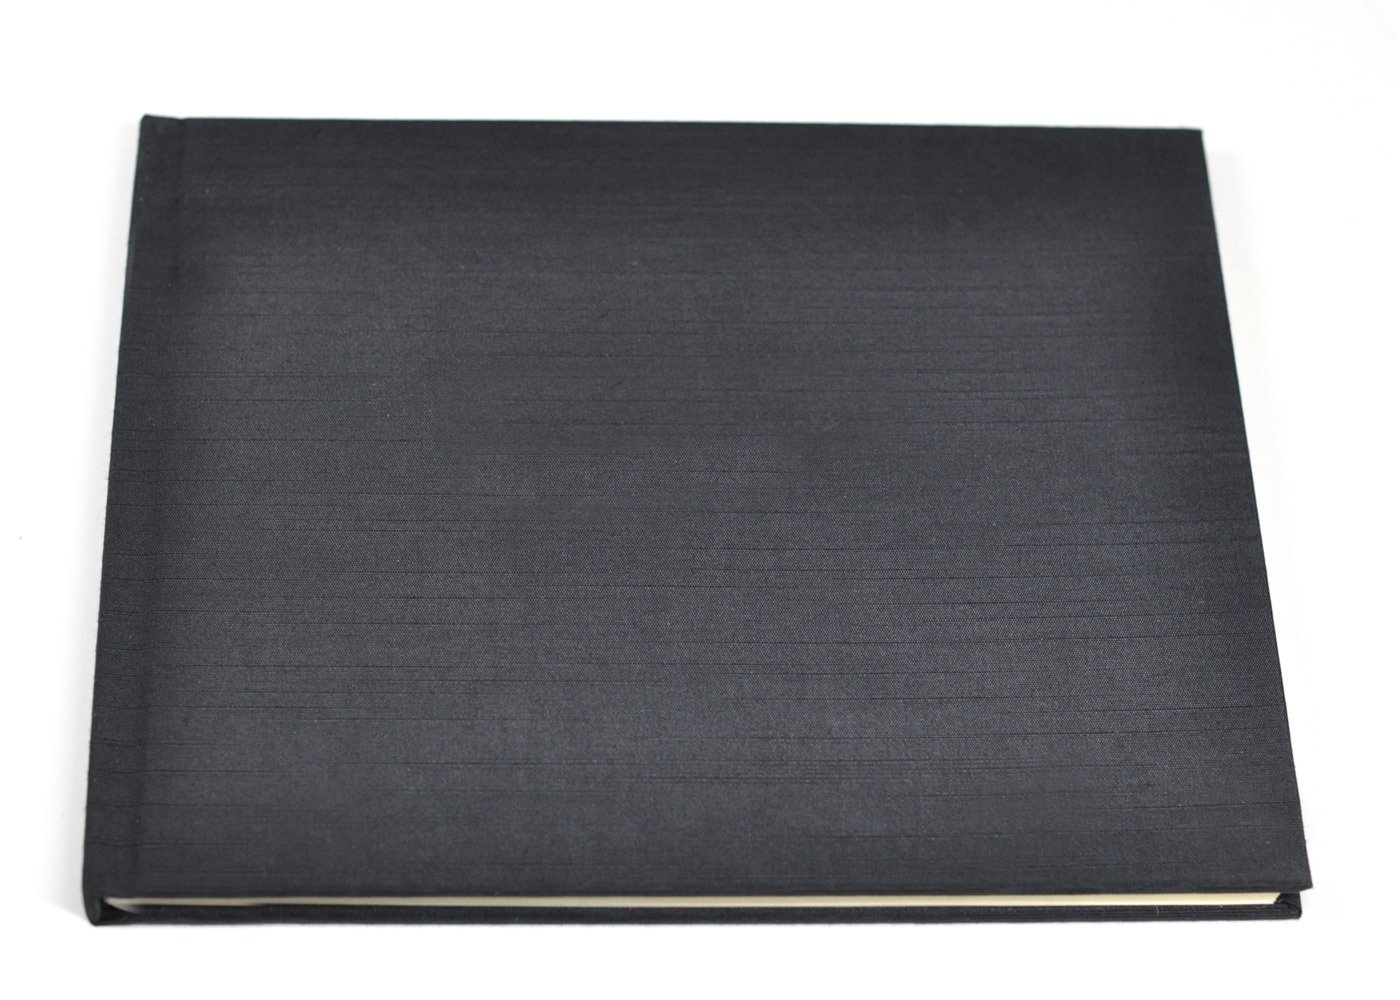 Unlined Guest Book or Memory Book with Blank Pages - Black Satin